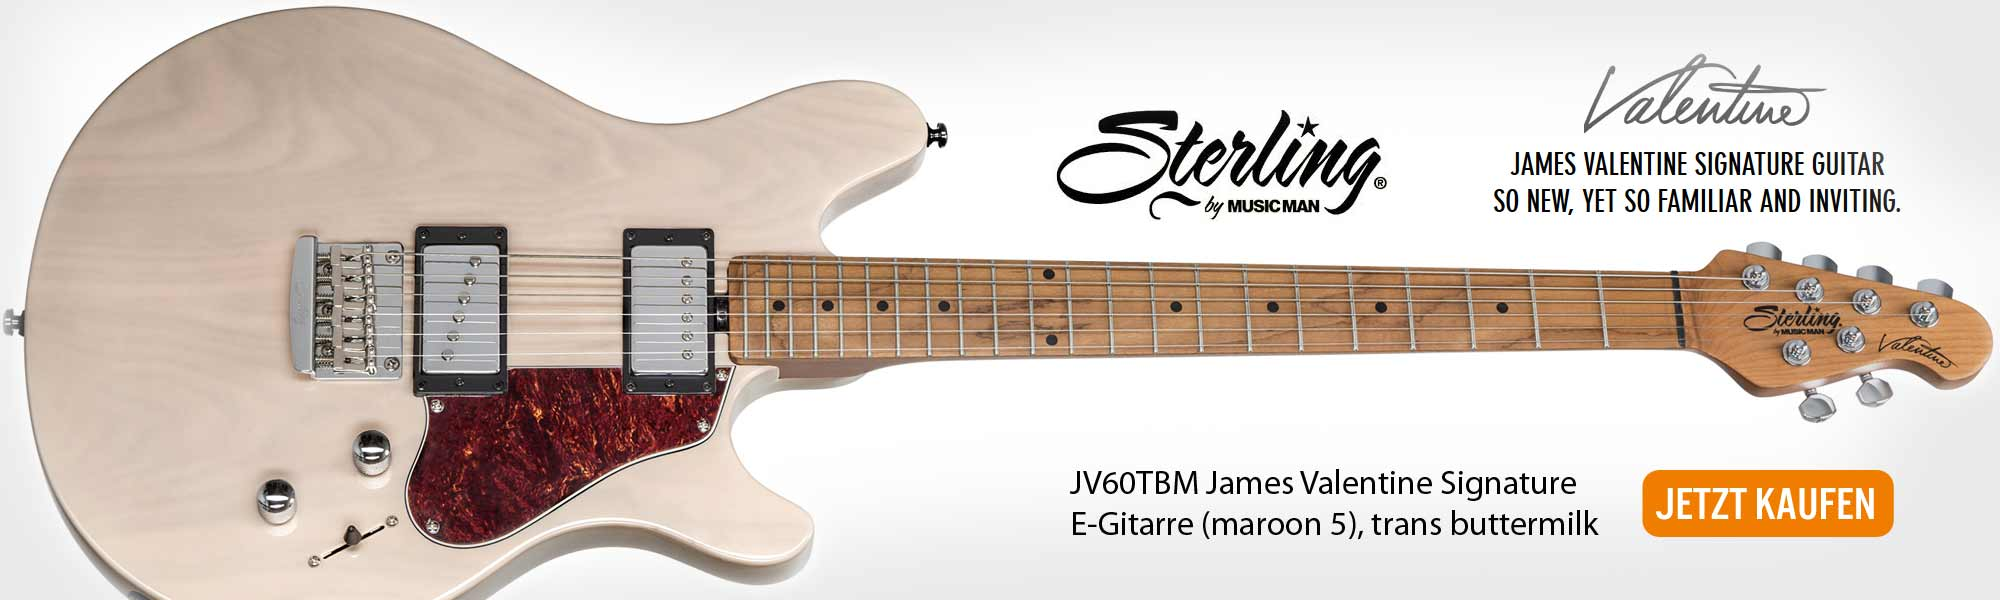 STERLING by Music Man JV60TBM James Valentine Signature